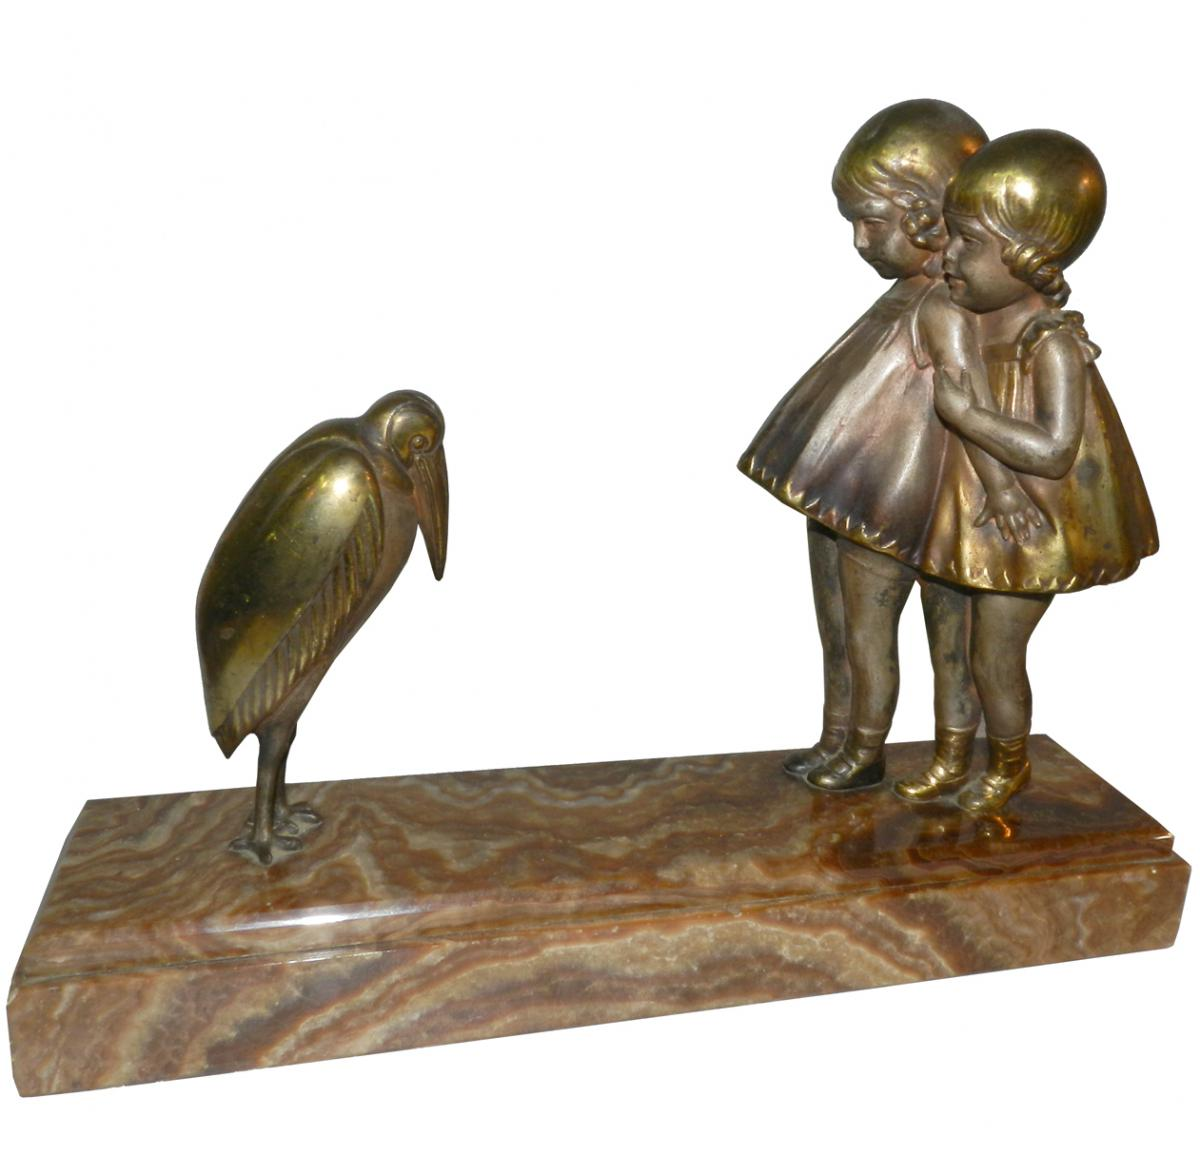 Demetre H Chiparus Art Deco Polychrome Sculpture Modernism